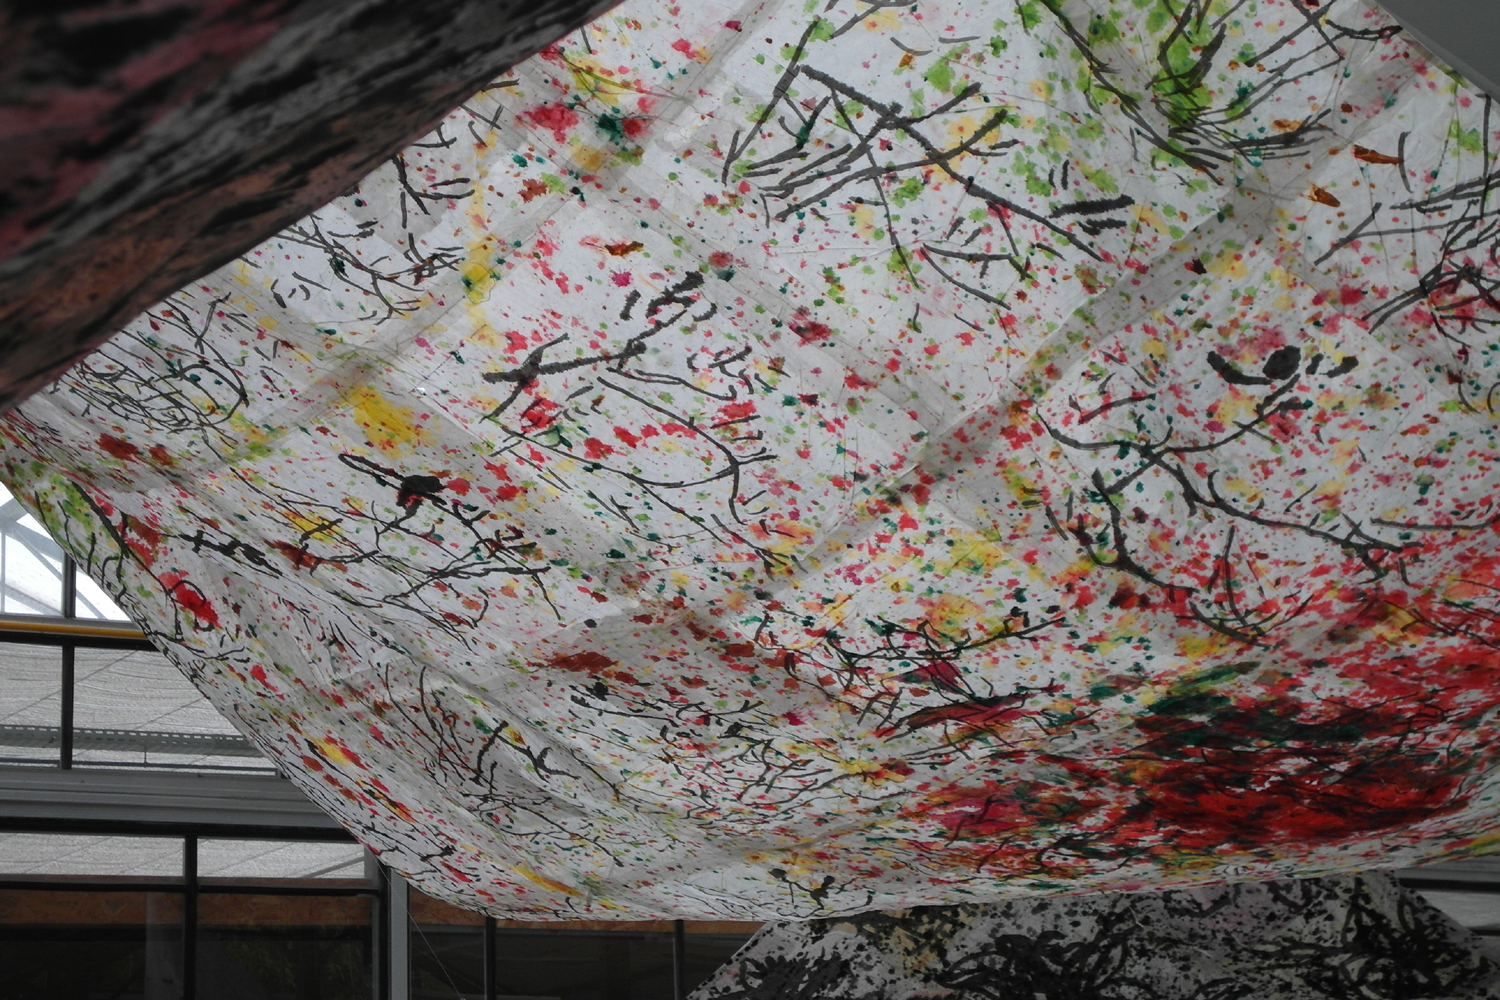 olive-kite of Noa, 340x 340 cm, mixed media on korean paper 2014.JPG